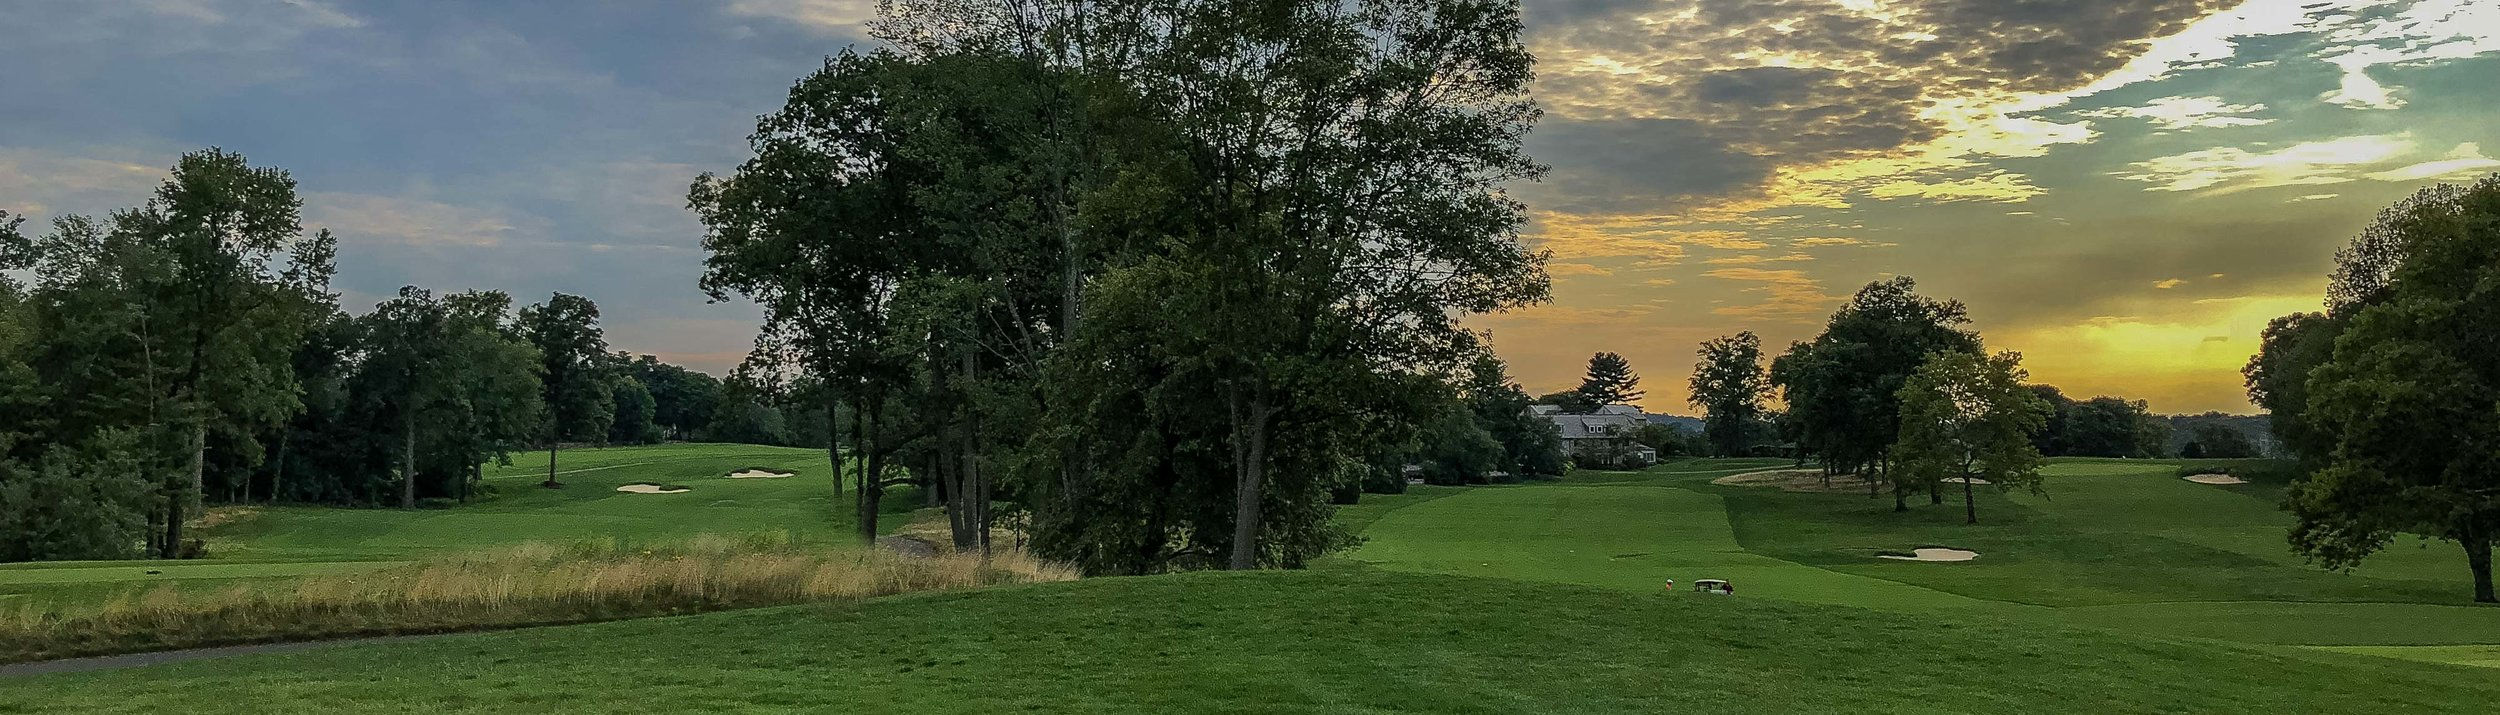 Golf Course SCC 2018- HAP (23 of 33).jpg